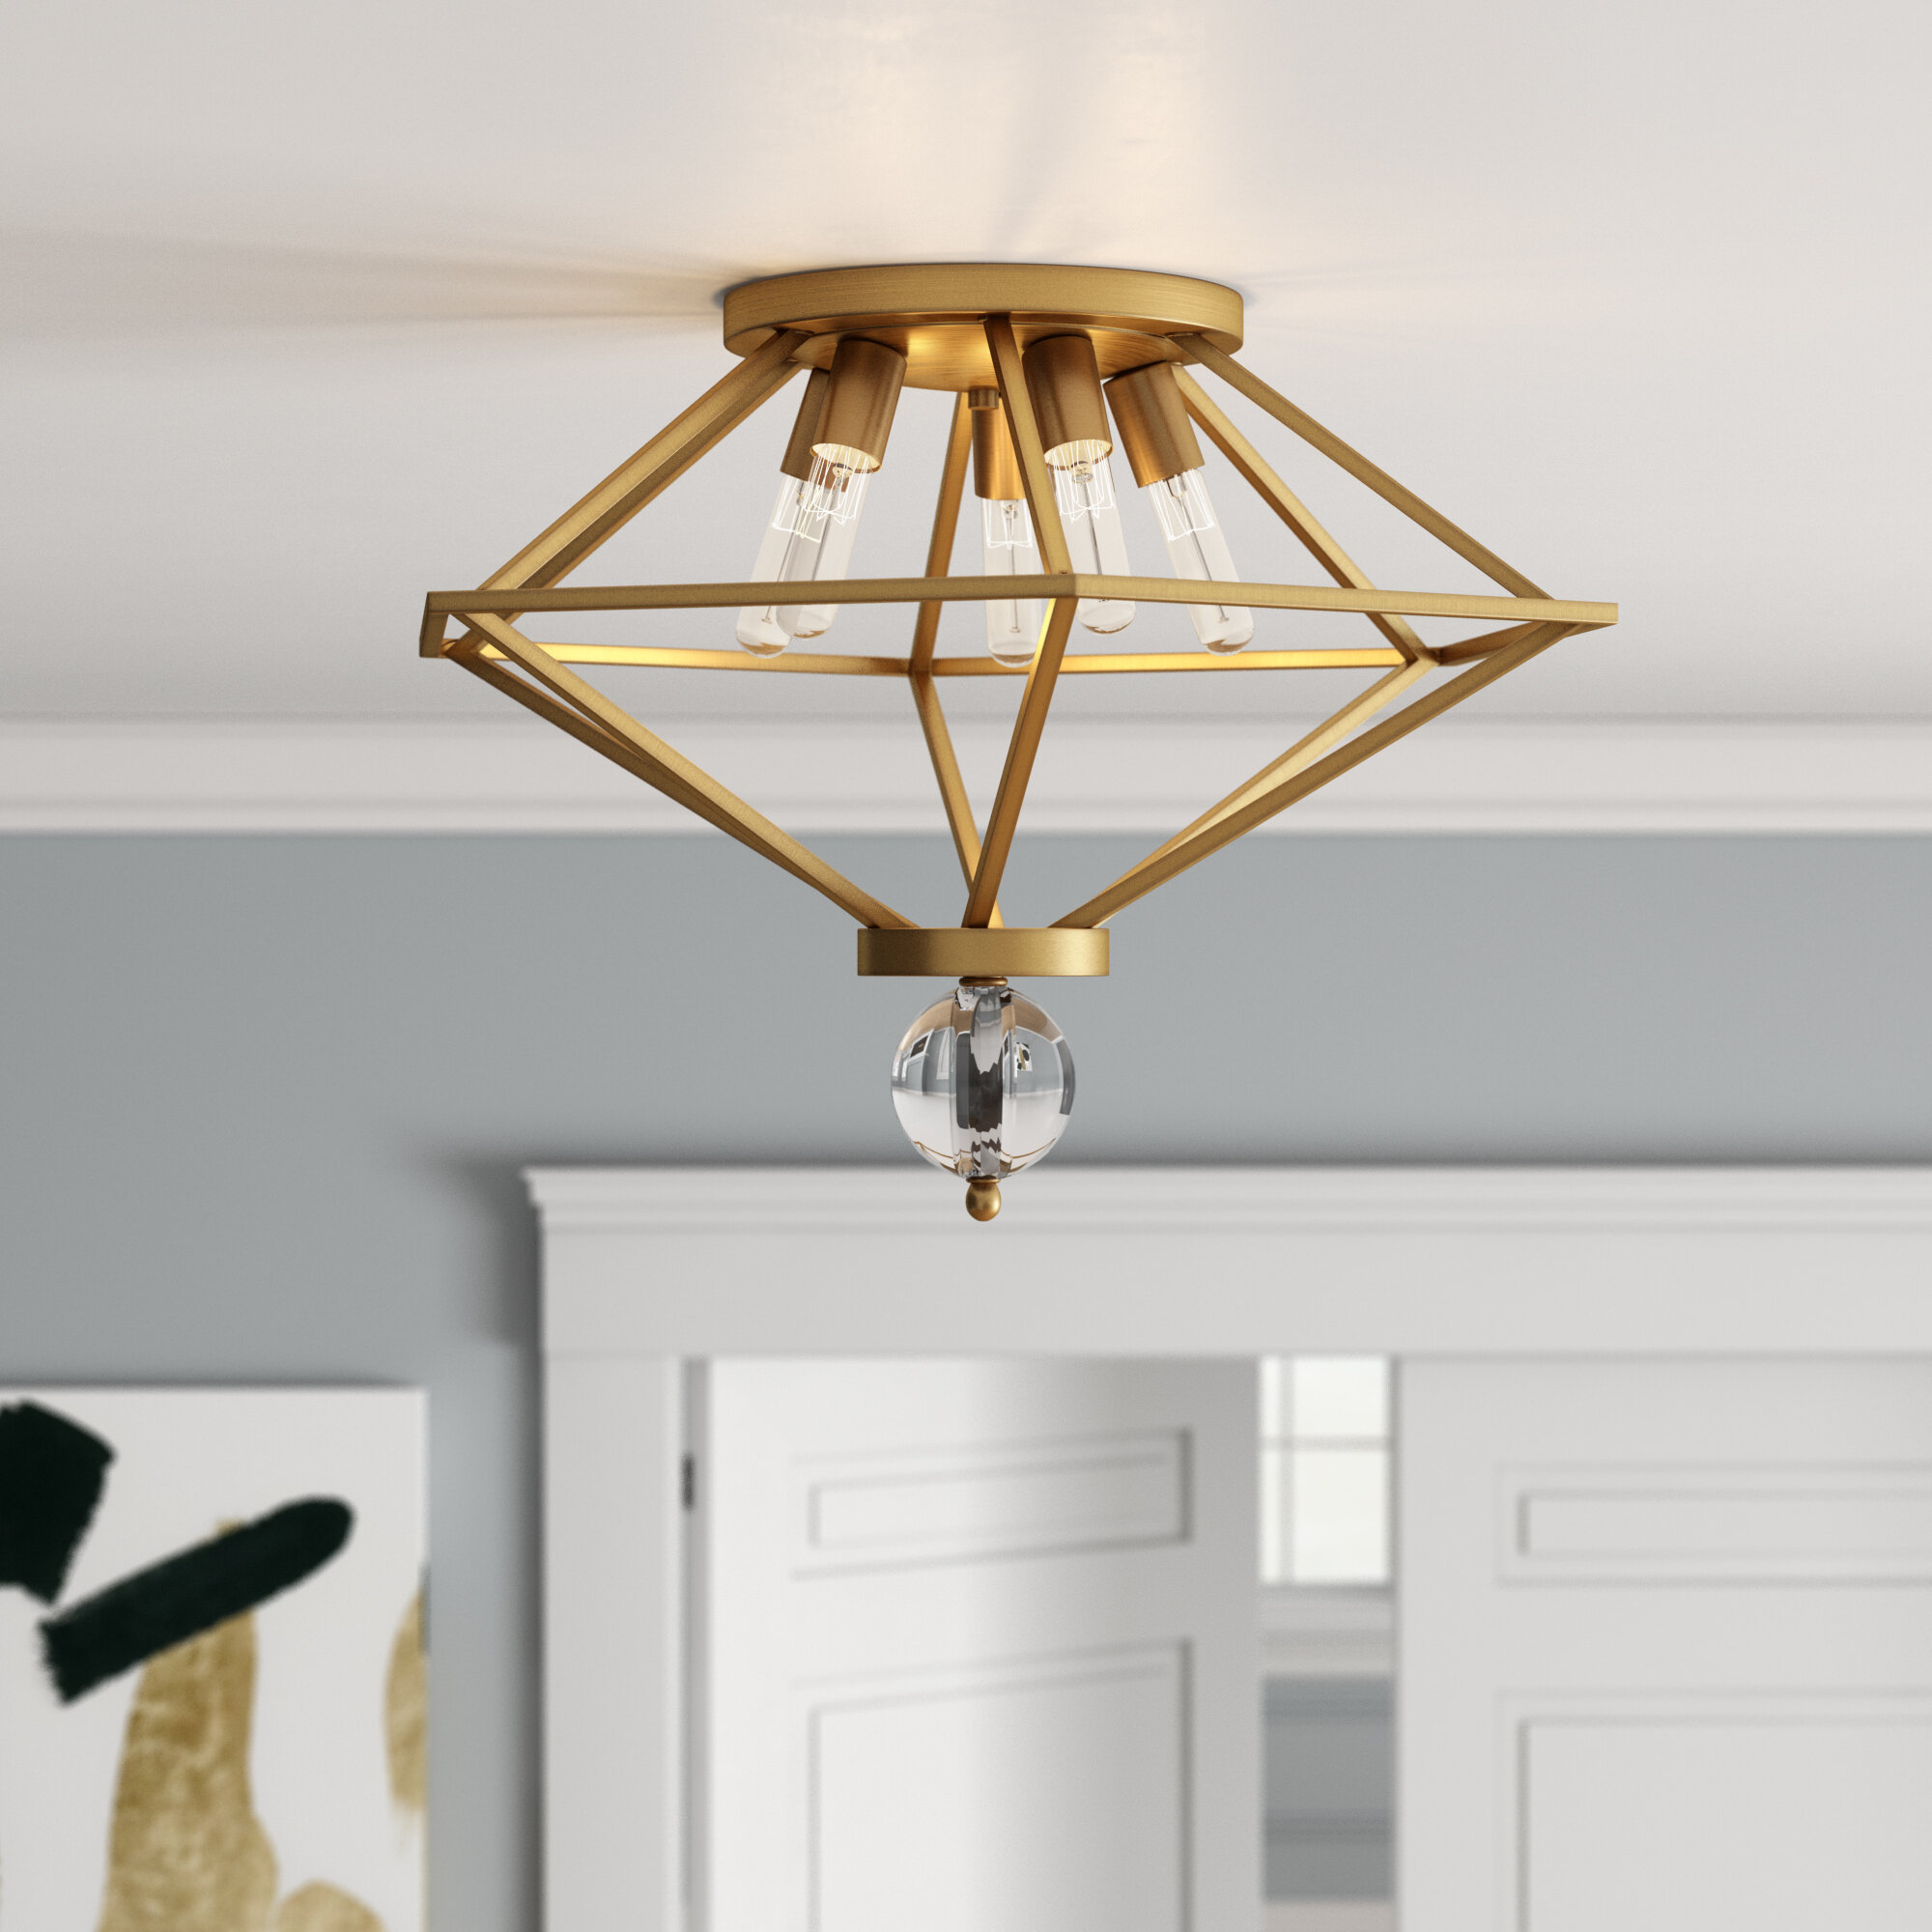 Willa Arlo Interiors Becker 5 Light 23 Unique Statement Geometric Flush Mount Reviews Wayfair